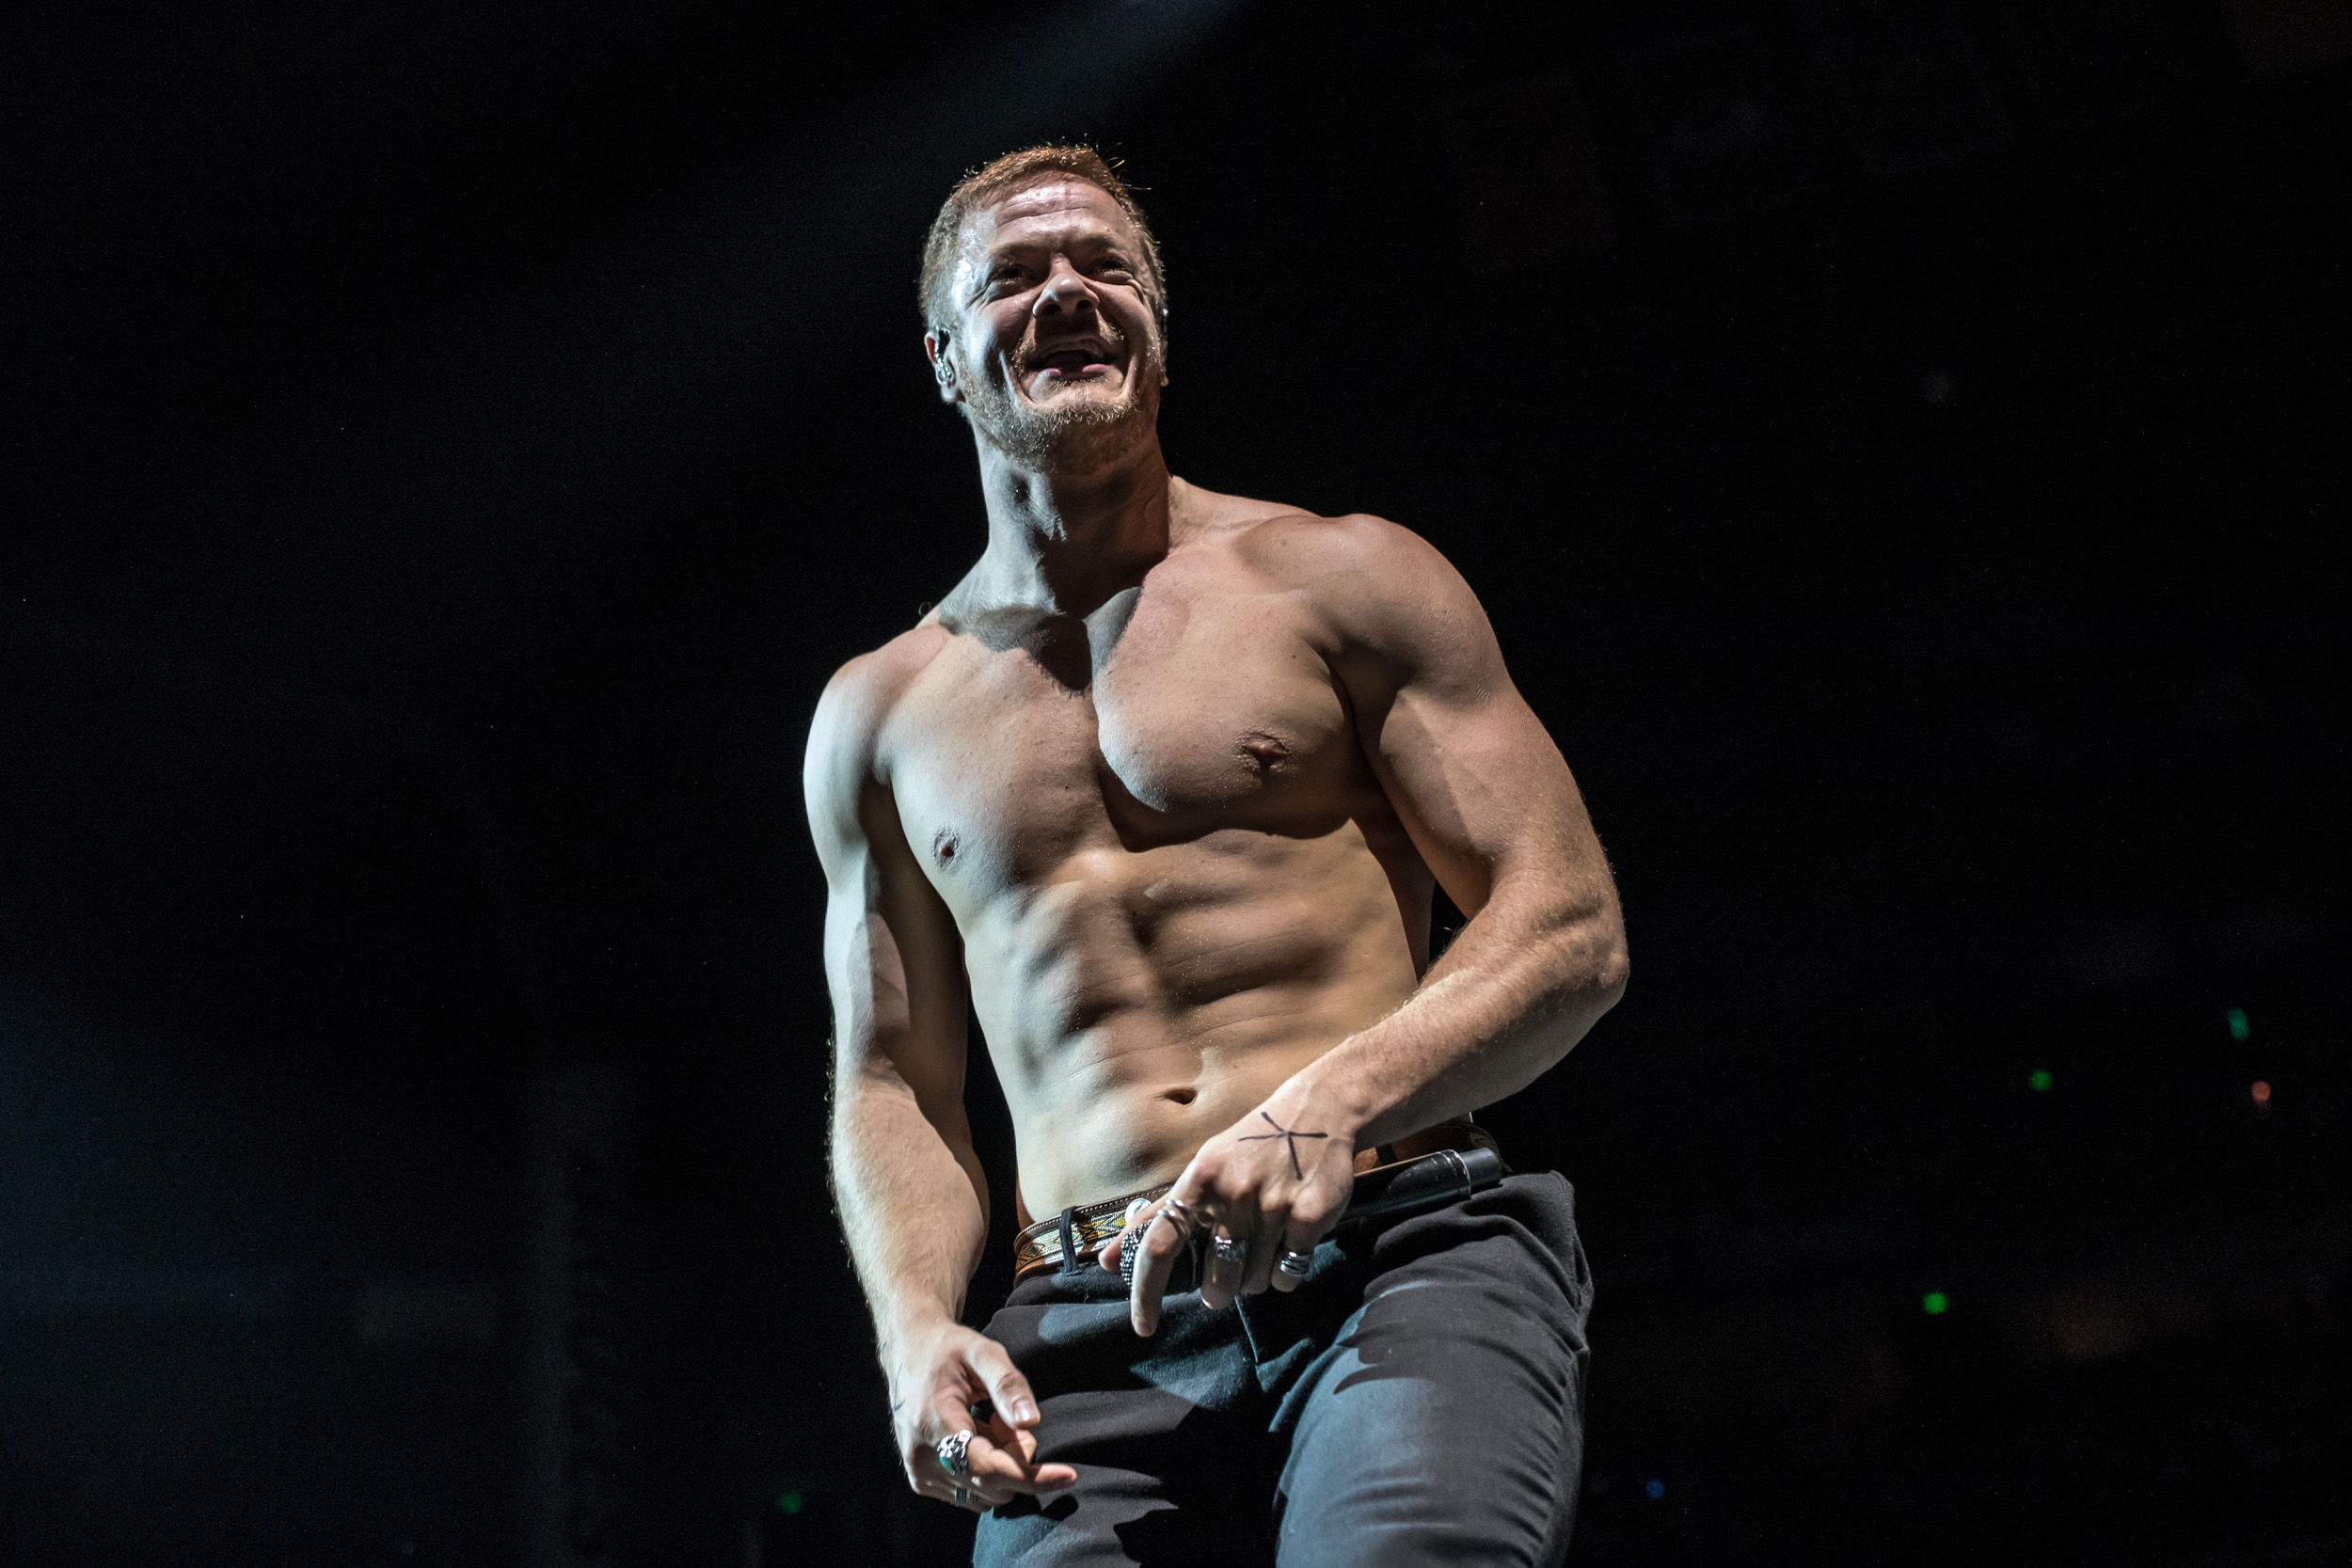 NA-07112018-Imagine Dragons-5.jpg